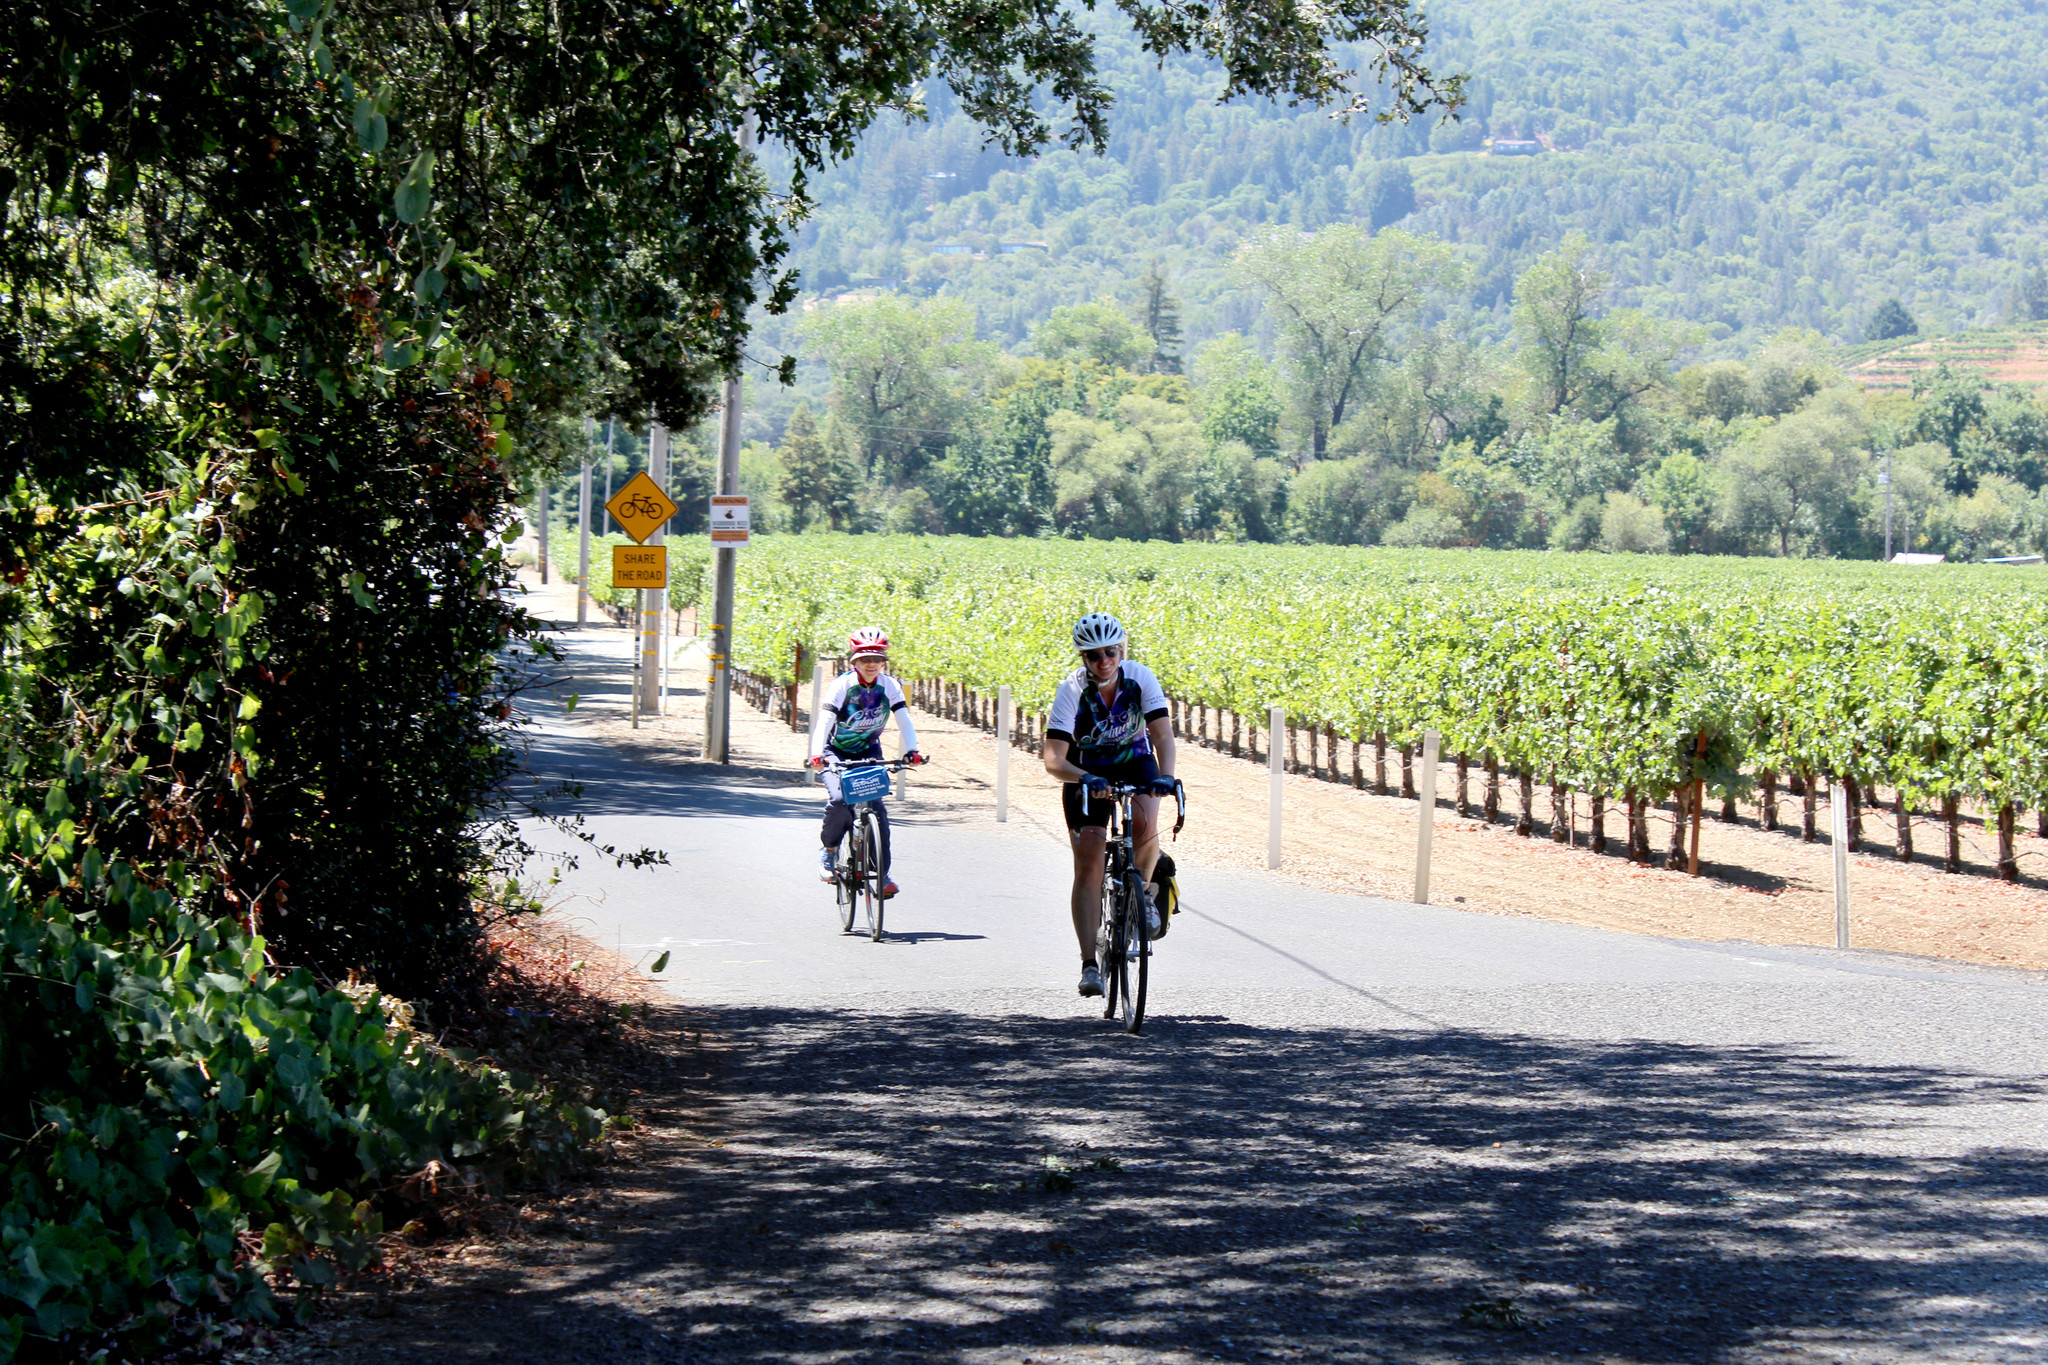 Cyclists riding down West Dry Creek Road near Healdsburg, Calif.